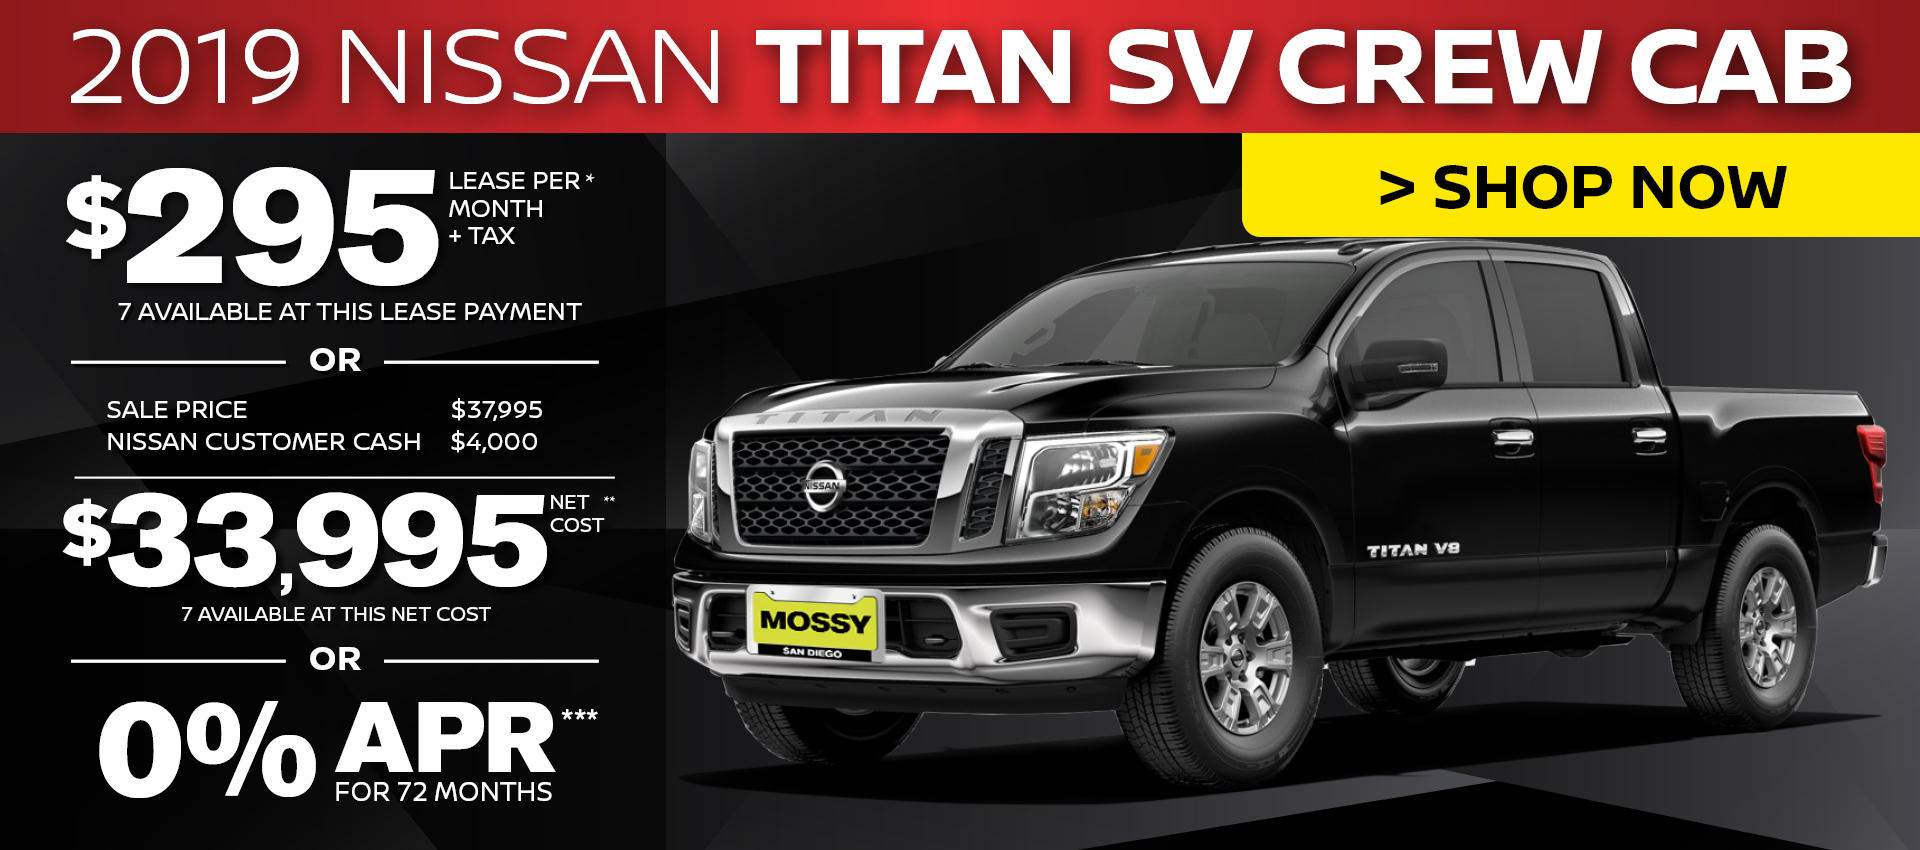 Mossy Nissan - Nissan Titan Purchase HP